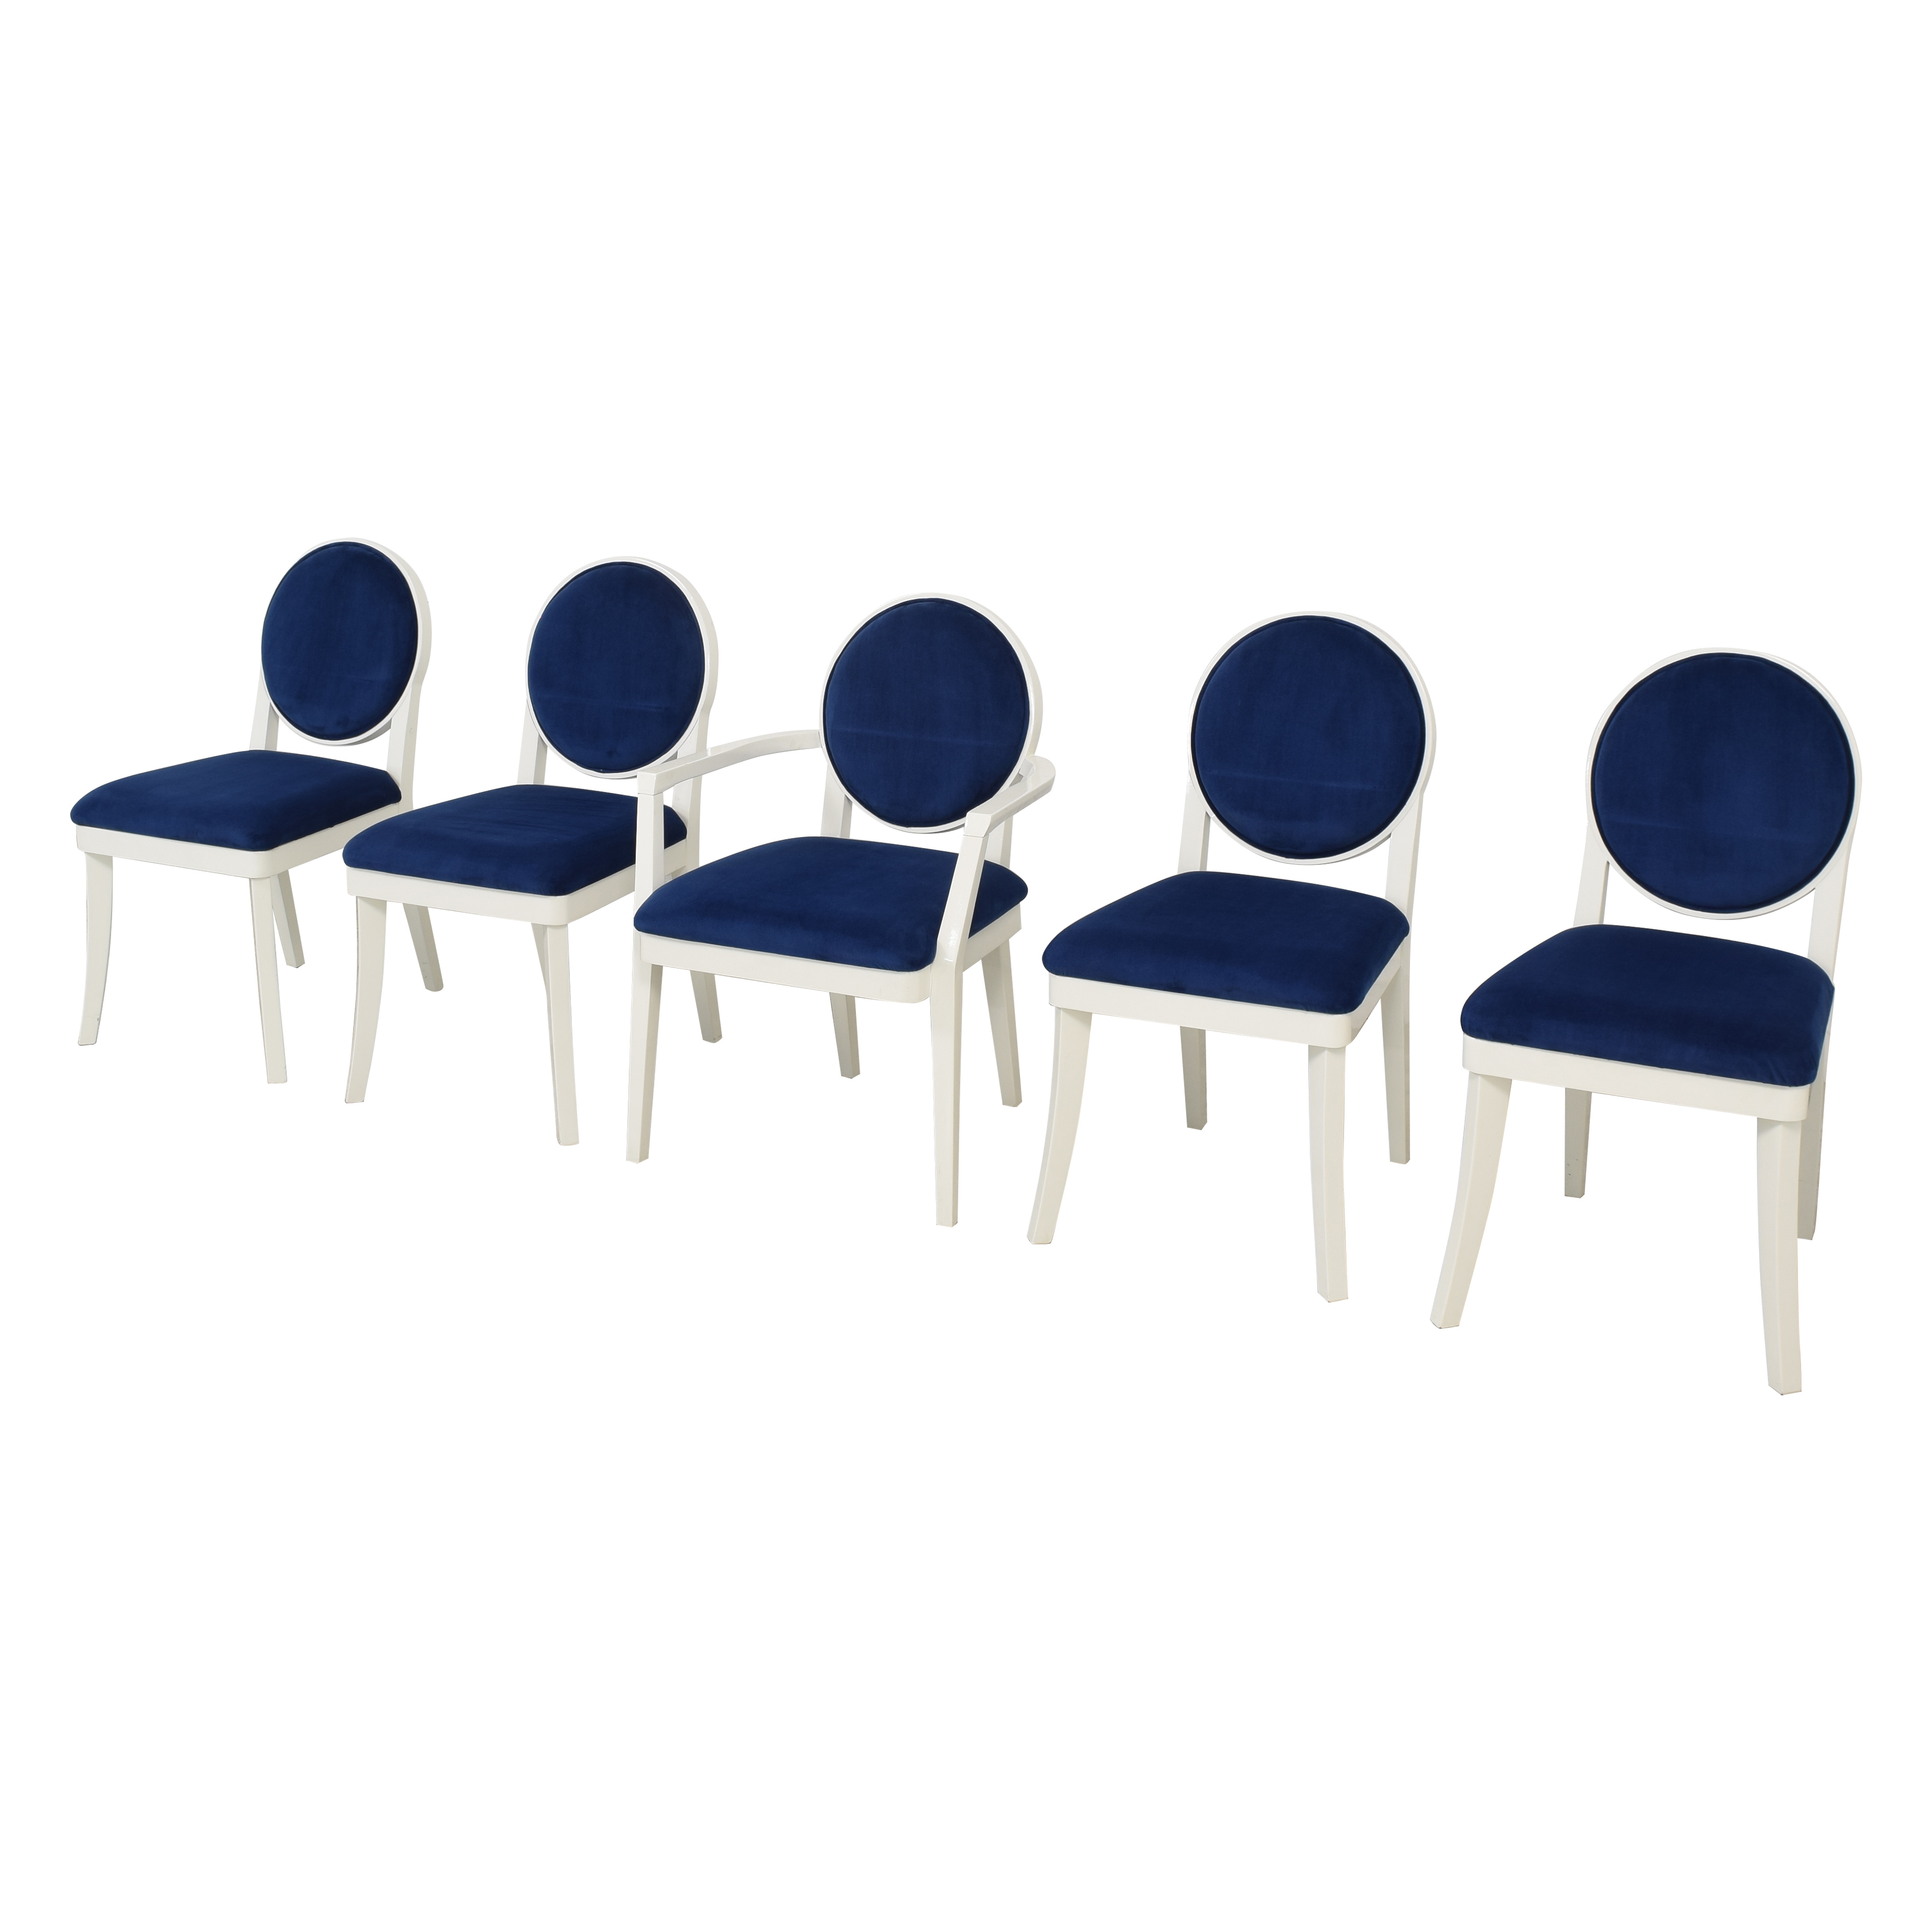 Jonathan Adler Happy Chic Dining Chairs sale